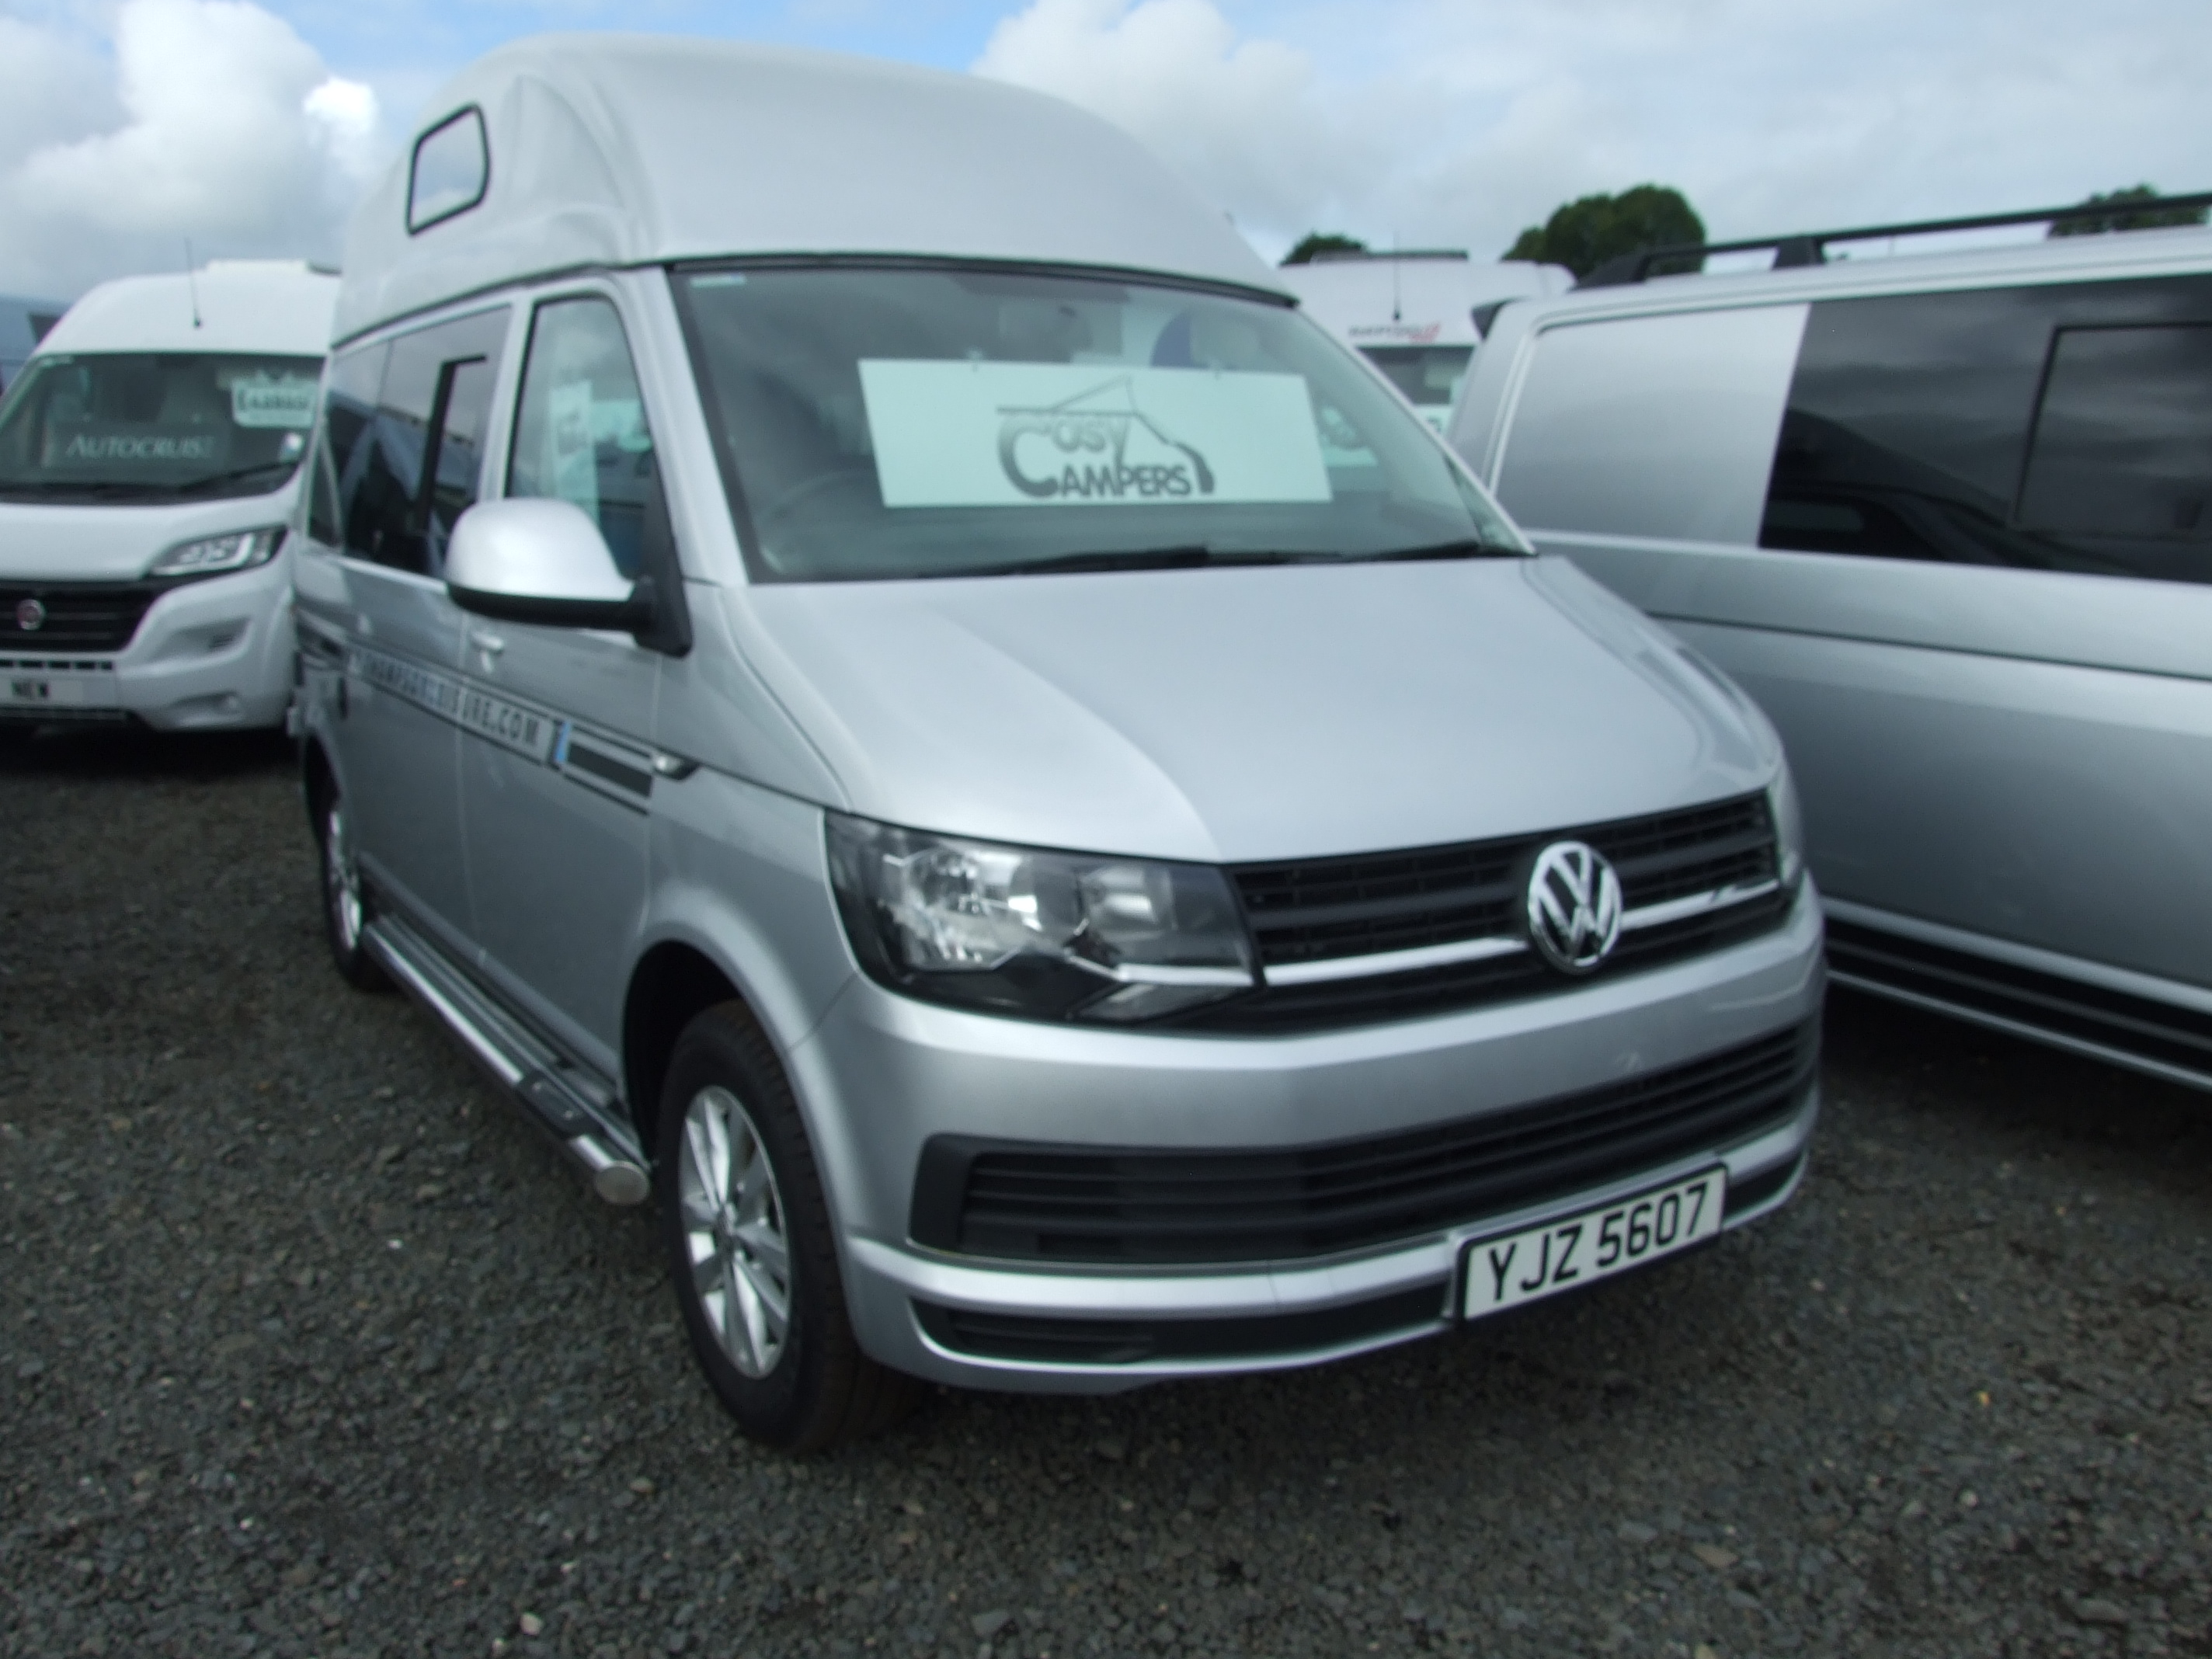 volkswagen t6 cosy camper save 4000 caravan bug buy and sell uk and all ireland. Black Bedroom Furniture Sets. Home Design Ideas